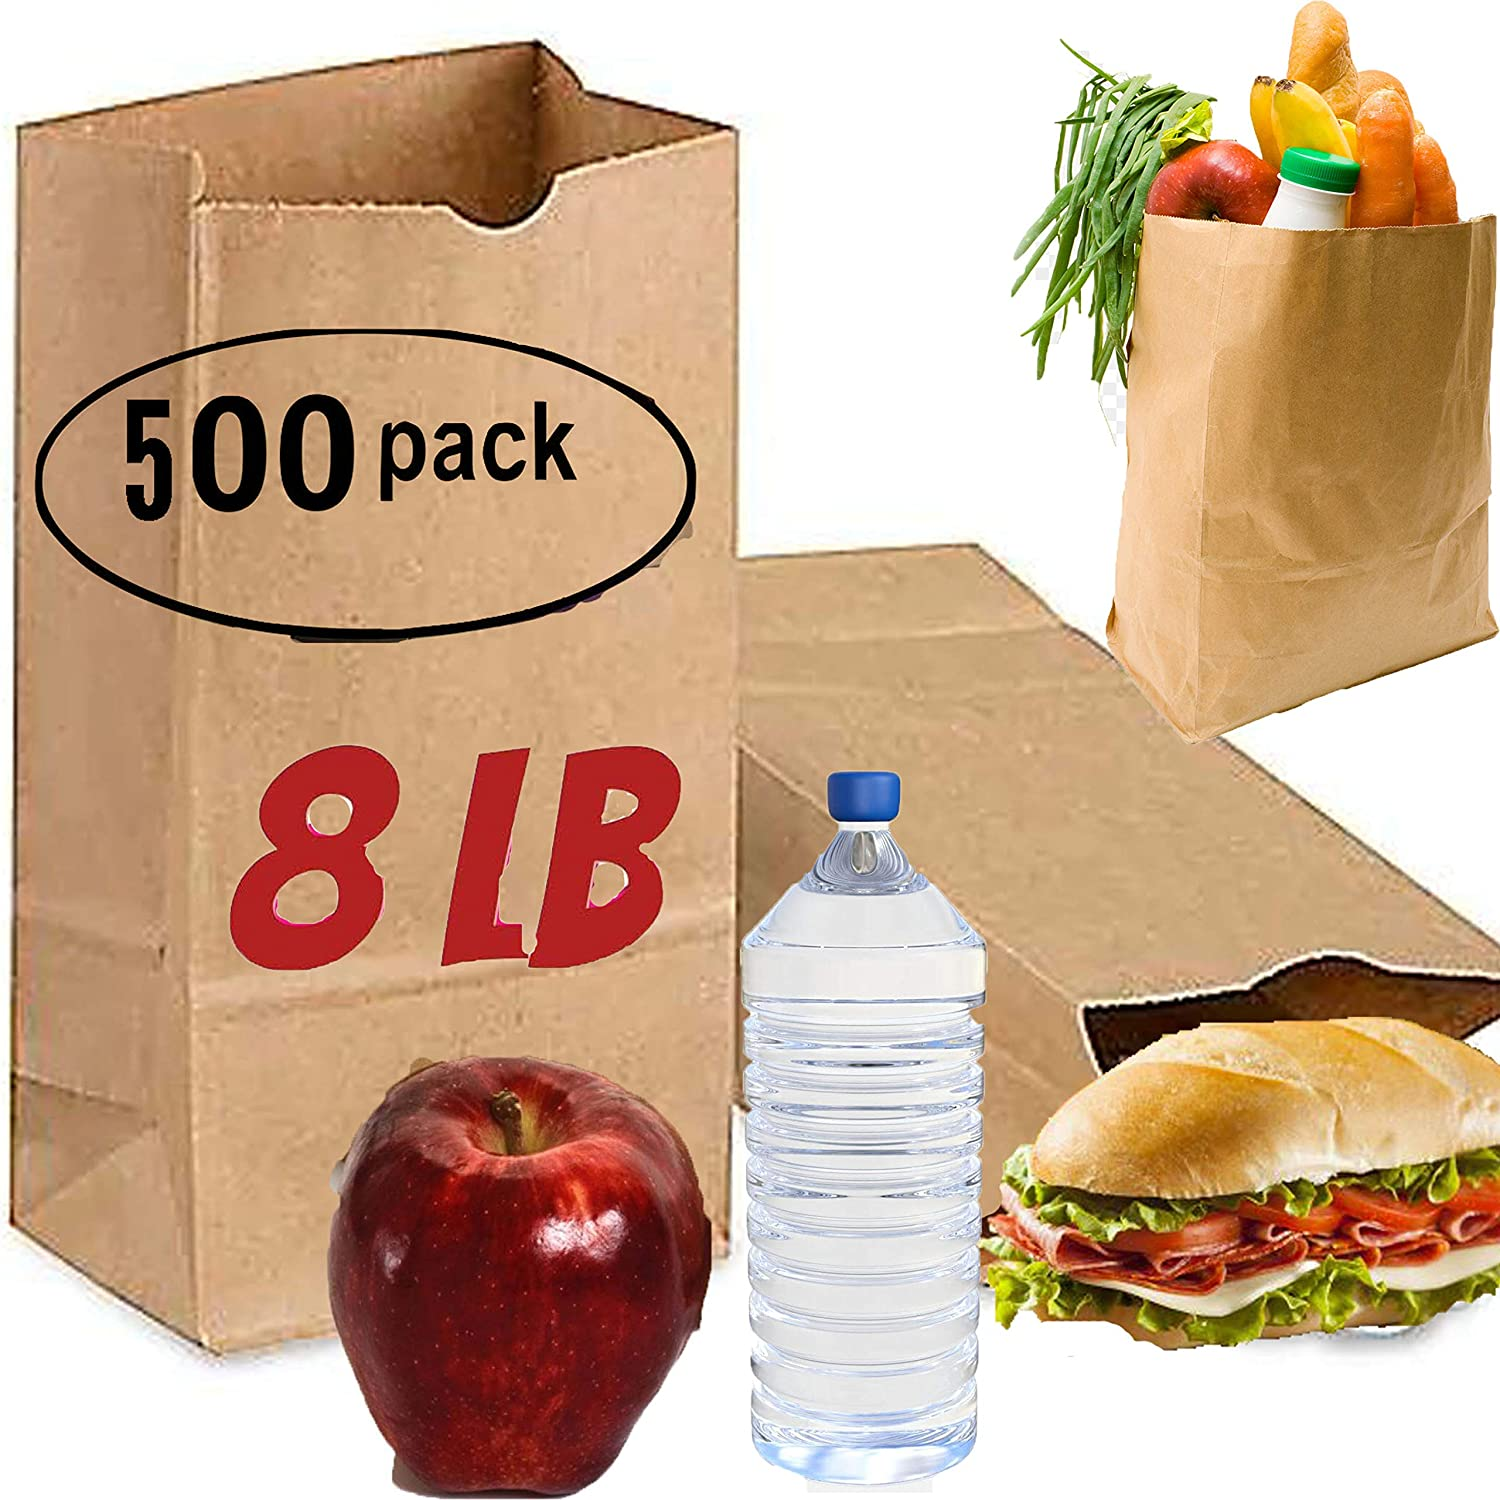 brown paper lunch bags large 500 count 8 lb brown paper sacks lunch sandwich brown paper bags 8 Pound Lunch Bags, Party Bags Pack of 500 brown lunch bags bulk